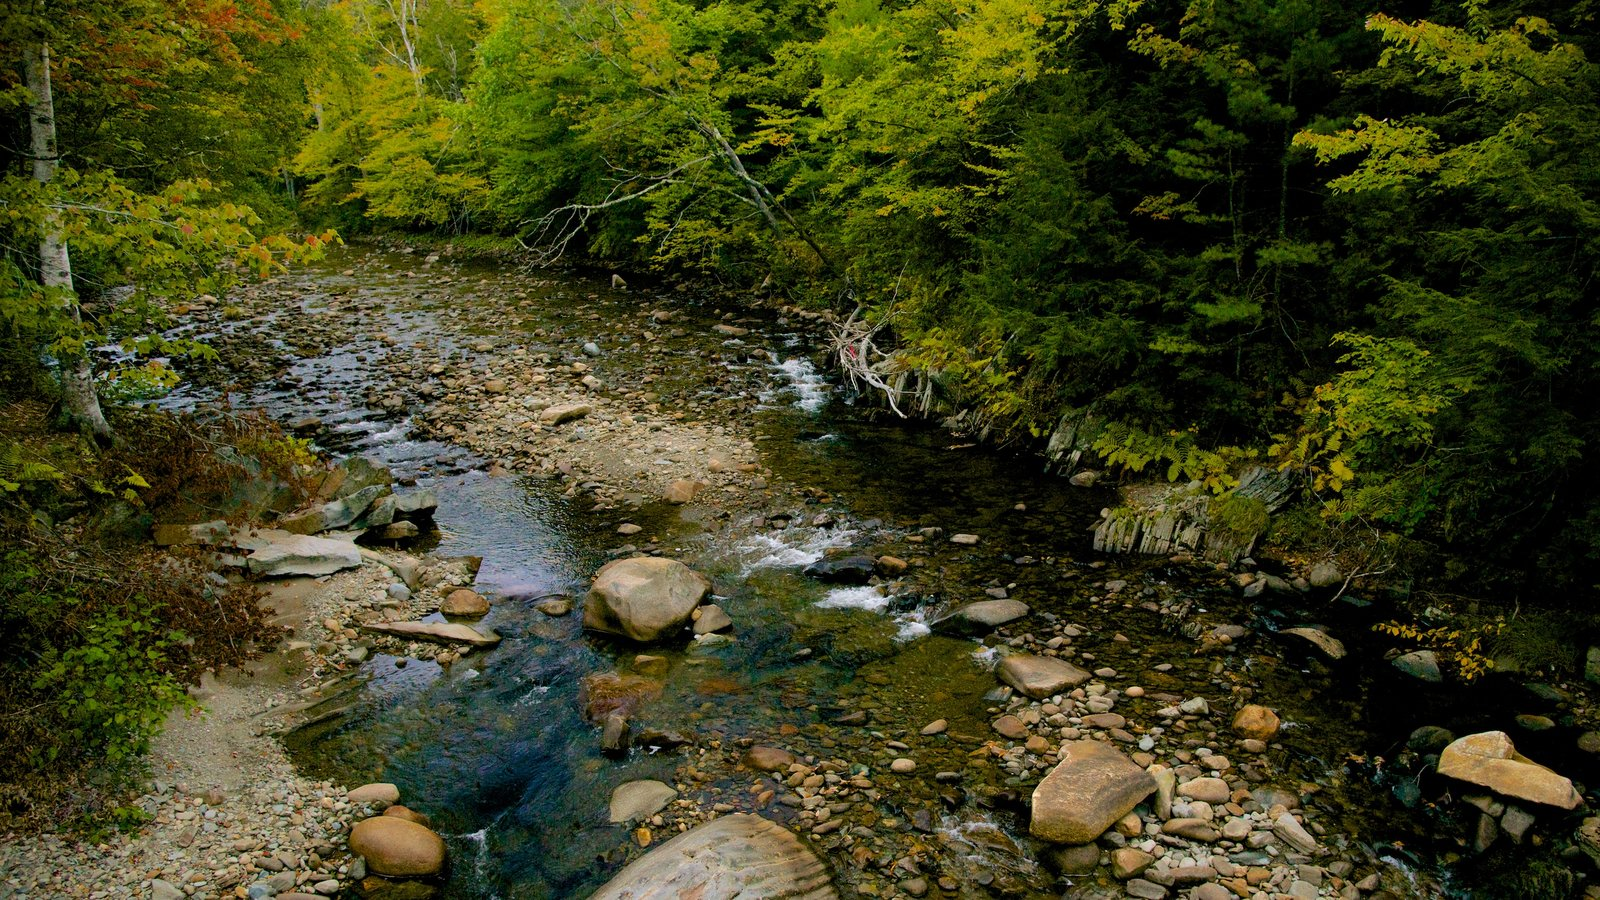 Maine showing a river or creek and forests